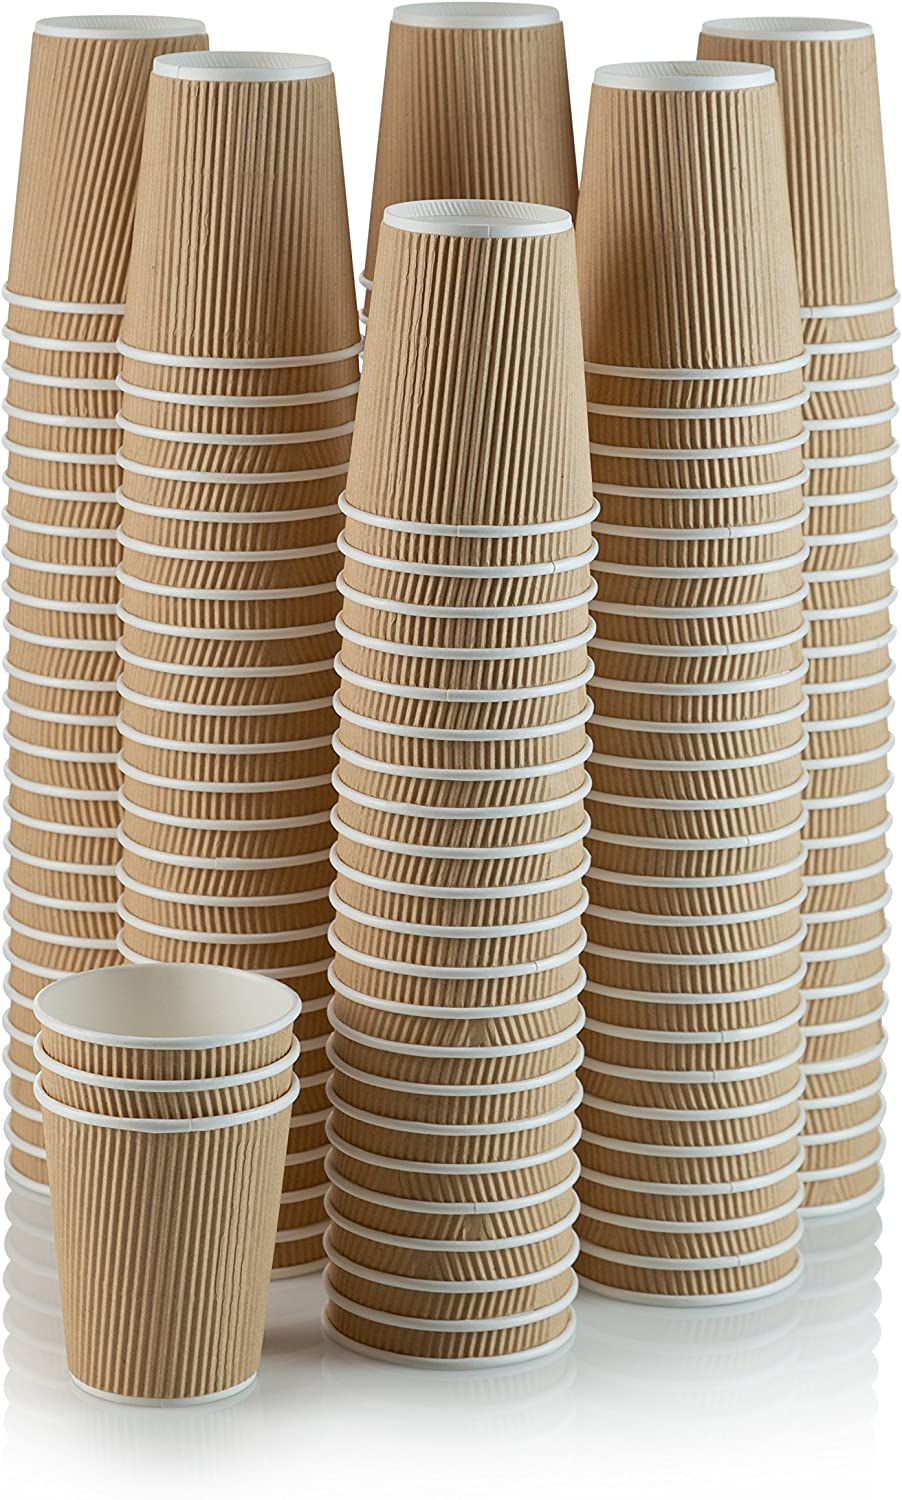 Set of 150 Ripple Insulated Kraft 12-oz Paper Cups – Coffee/Tea Hot Cups | Recyclable |3-Layer Rippled Wall For Better Insulation | Perfect for Cappuccino, Hot Cocoa, or Iced Drinks